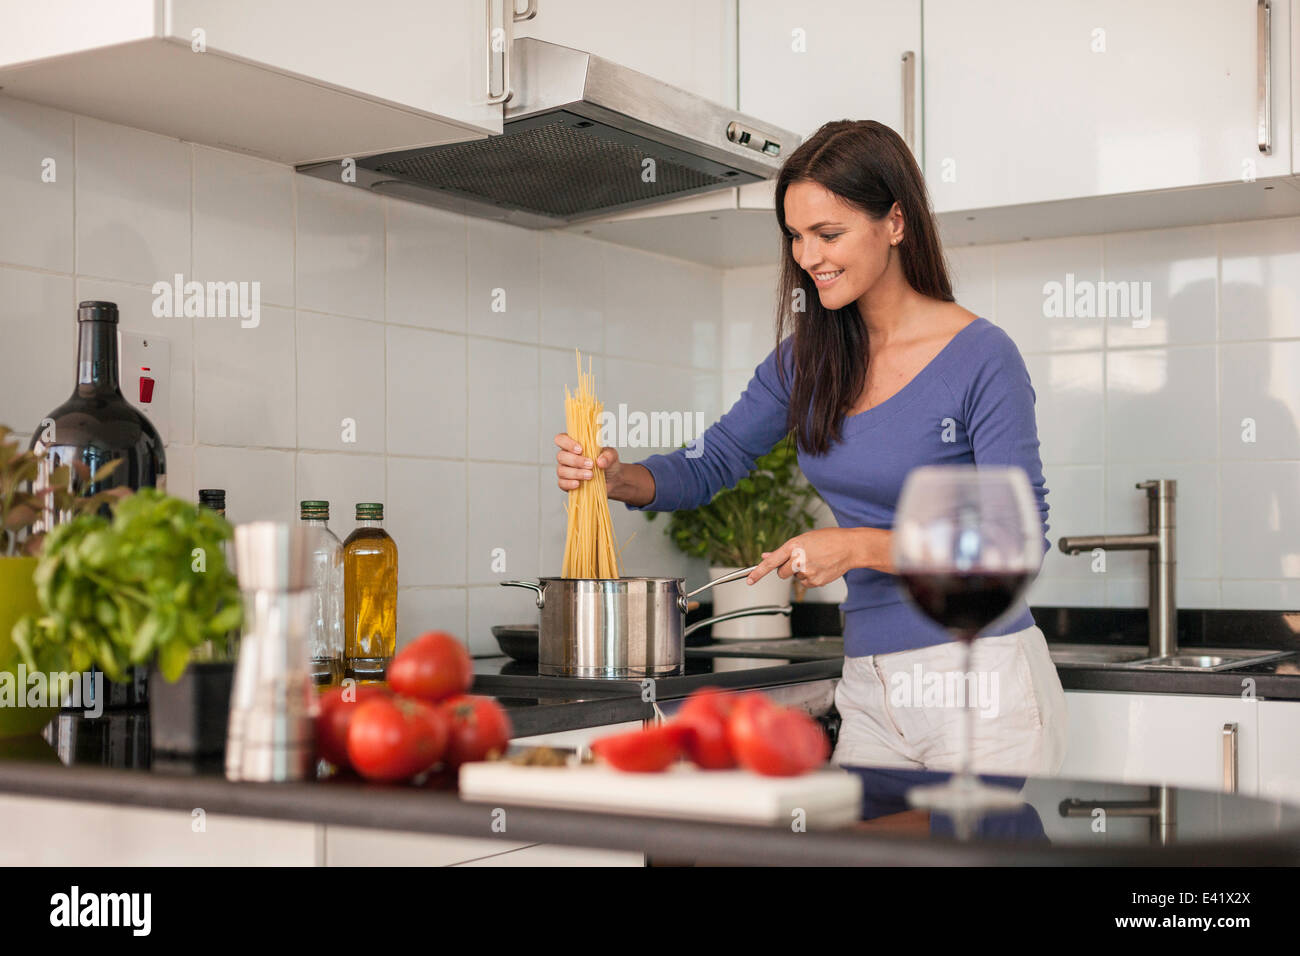 Young woman cooking spaghetti in kitchen - Stock Image